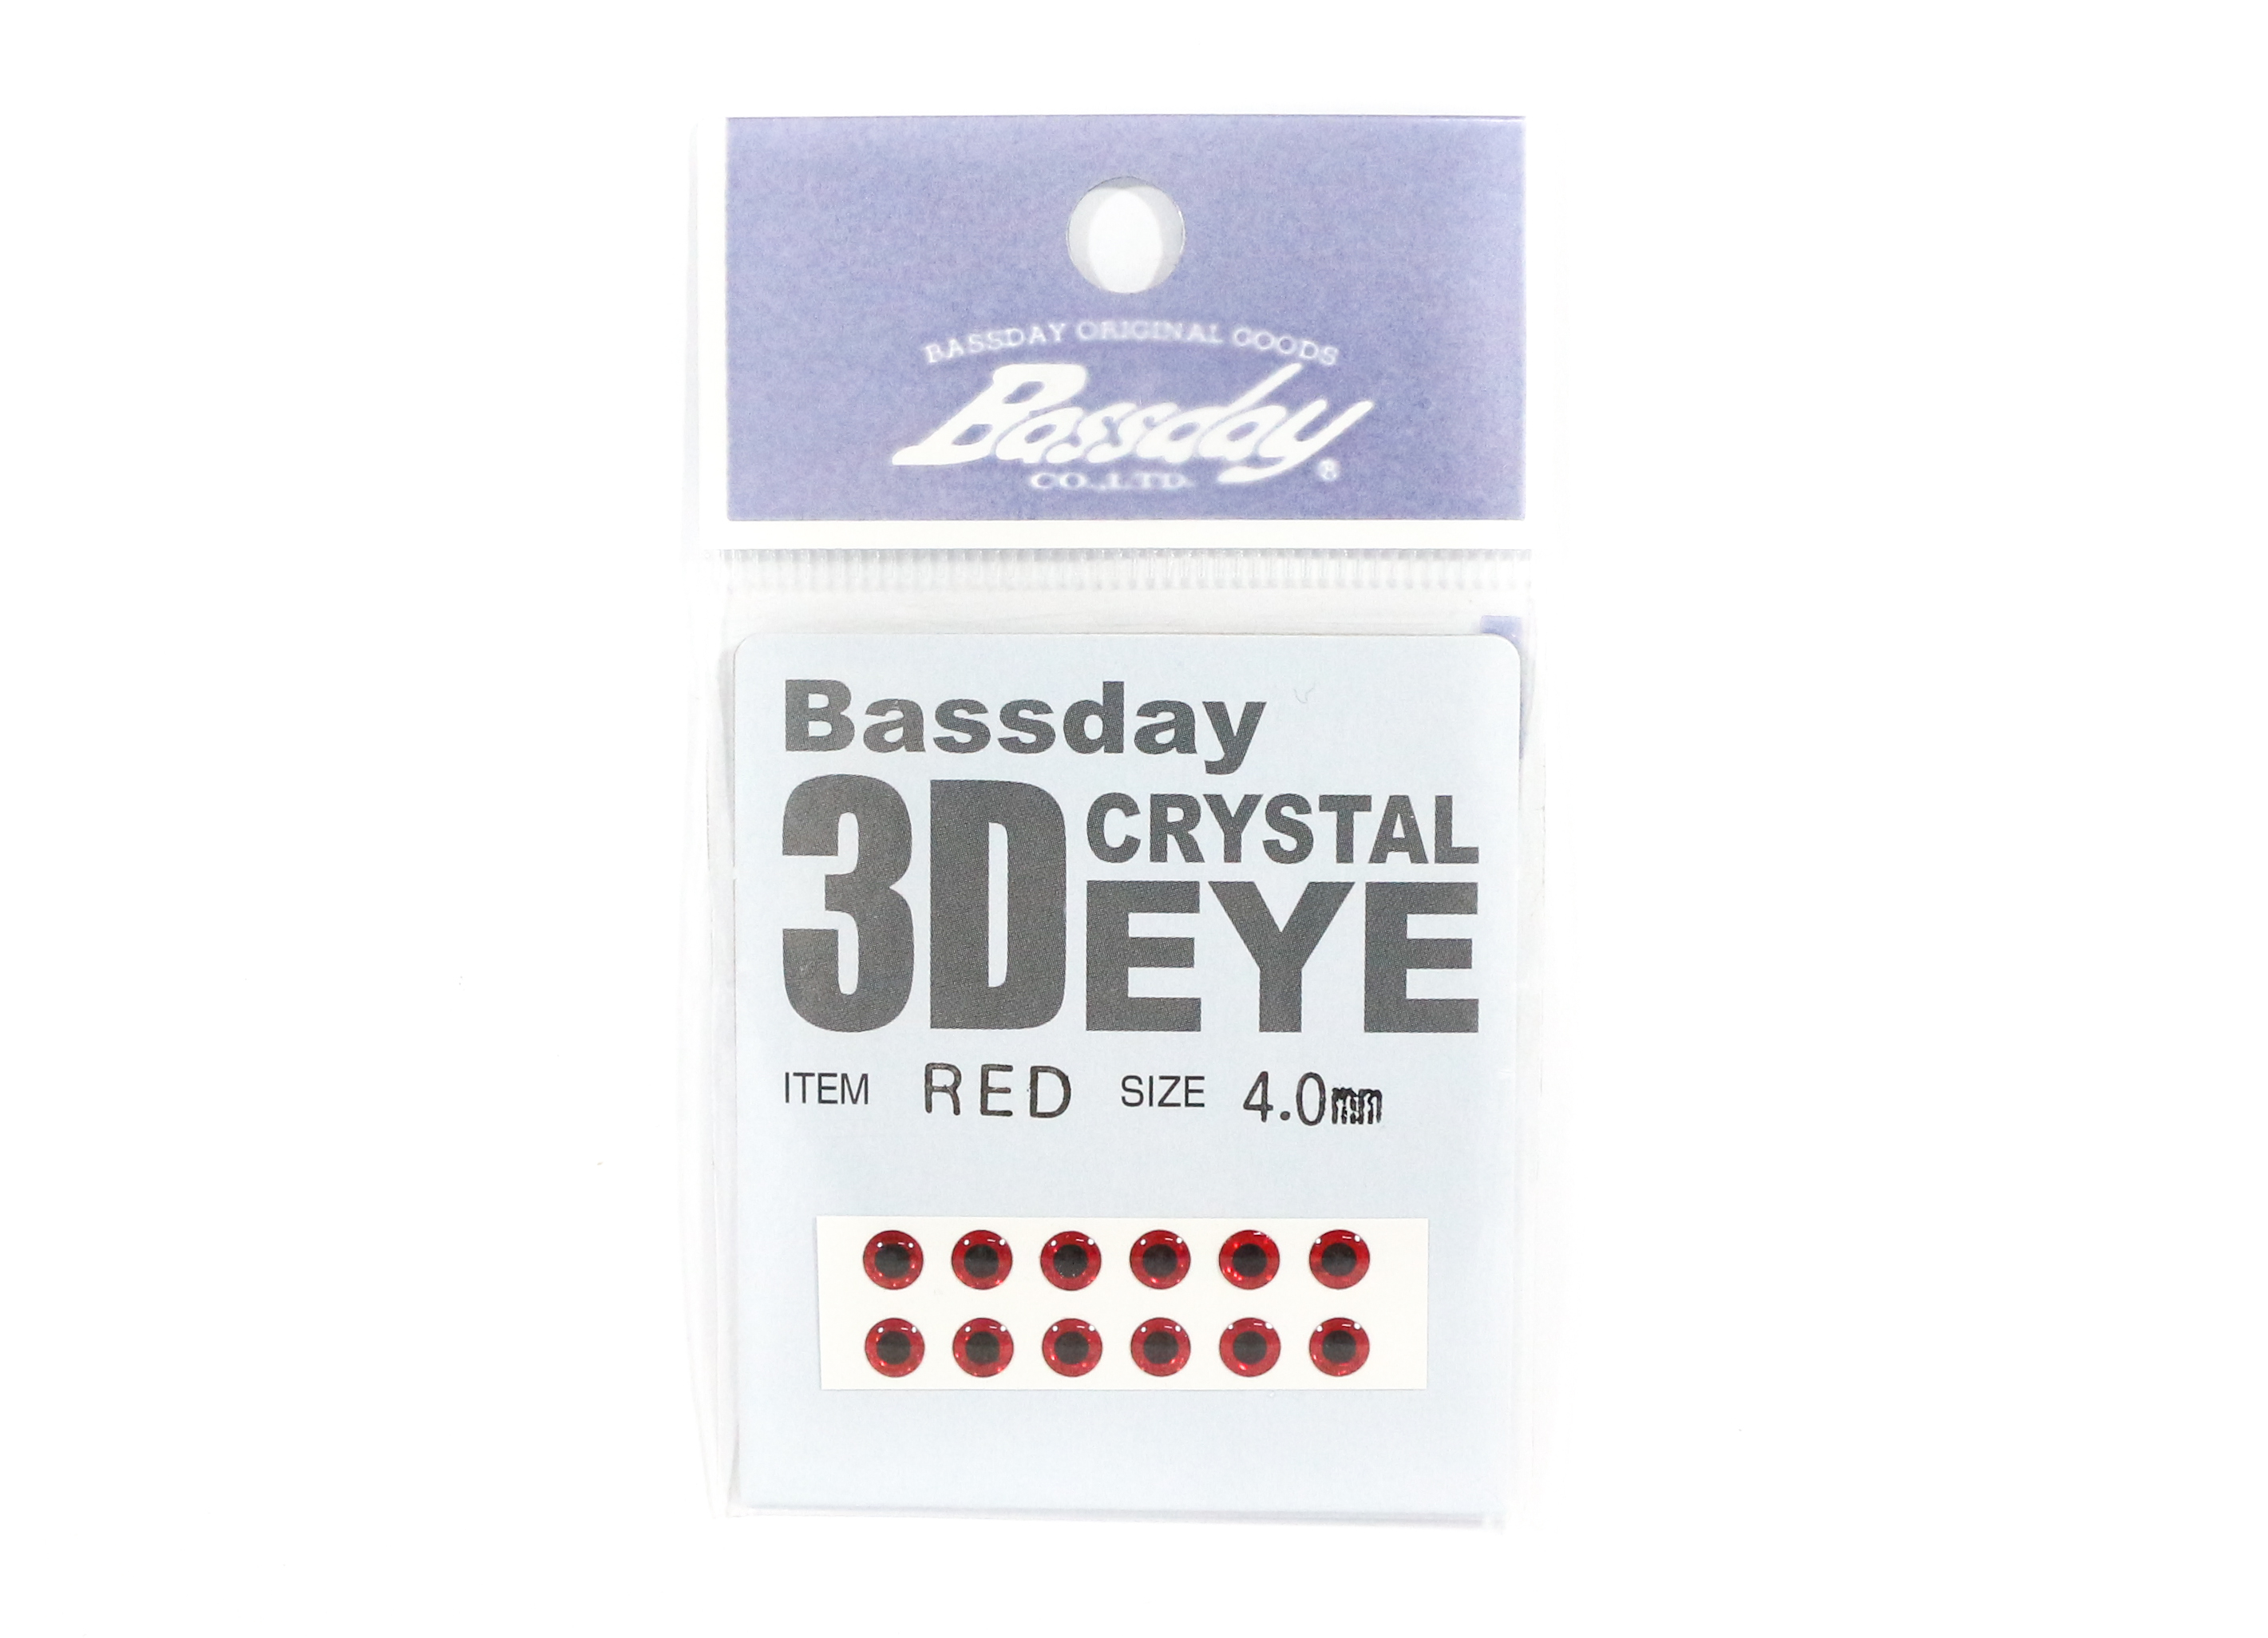 Bassday Live Eye Accessory Diameter 4mm Red (8023)